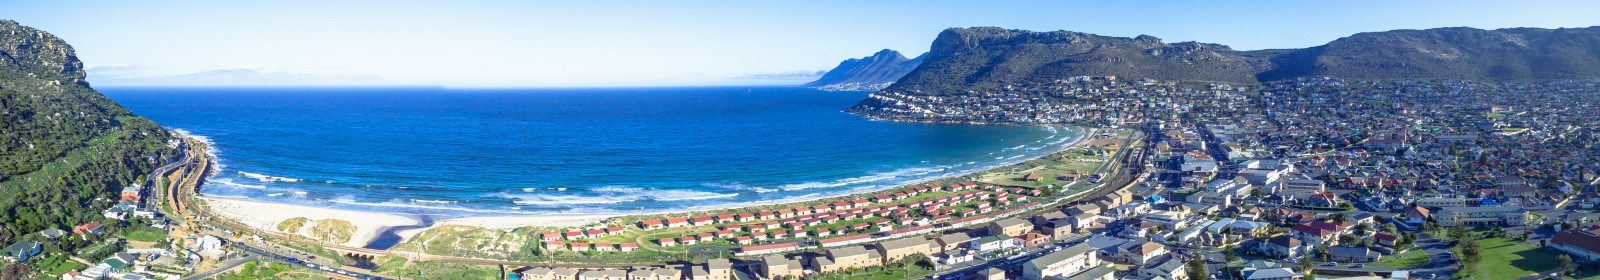 False Bay property market about to start booming